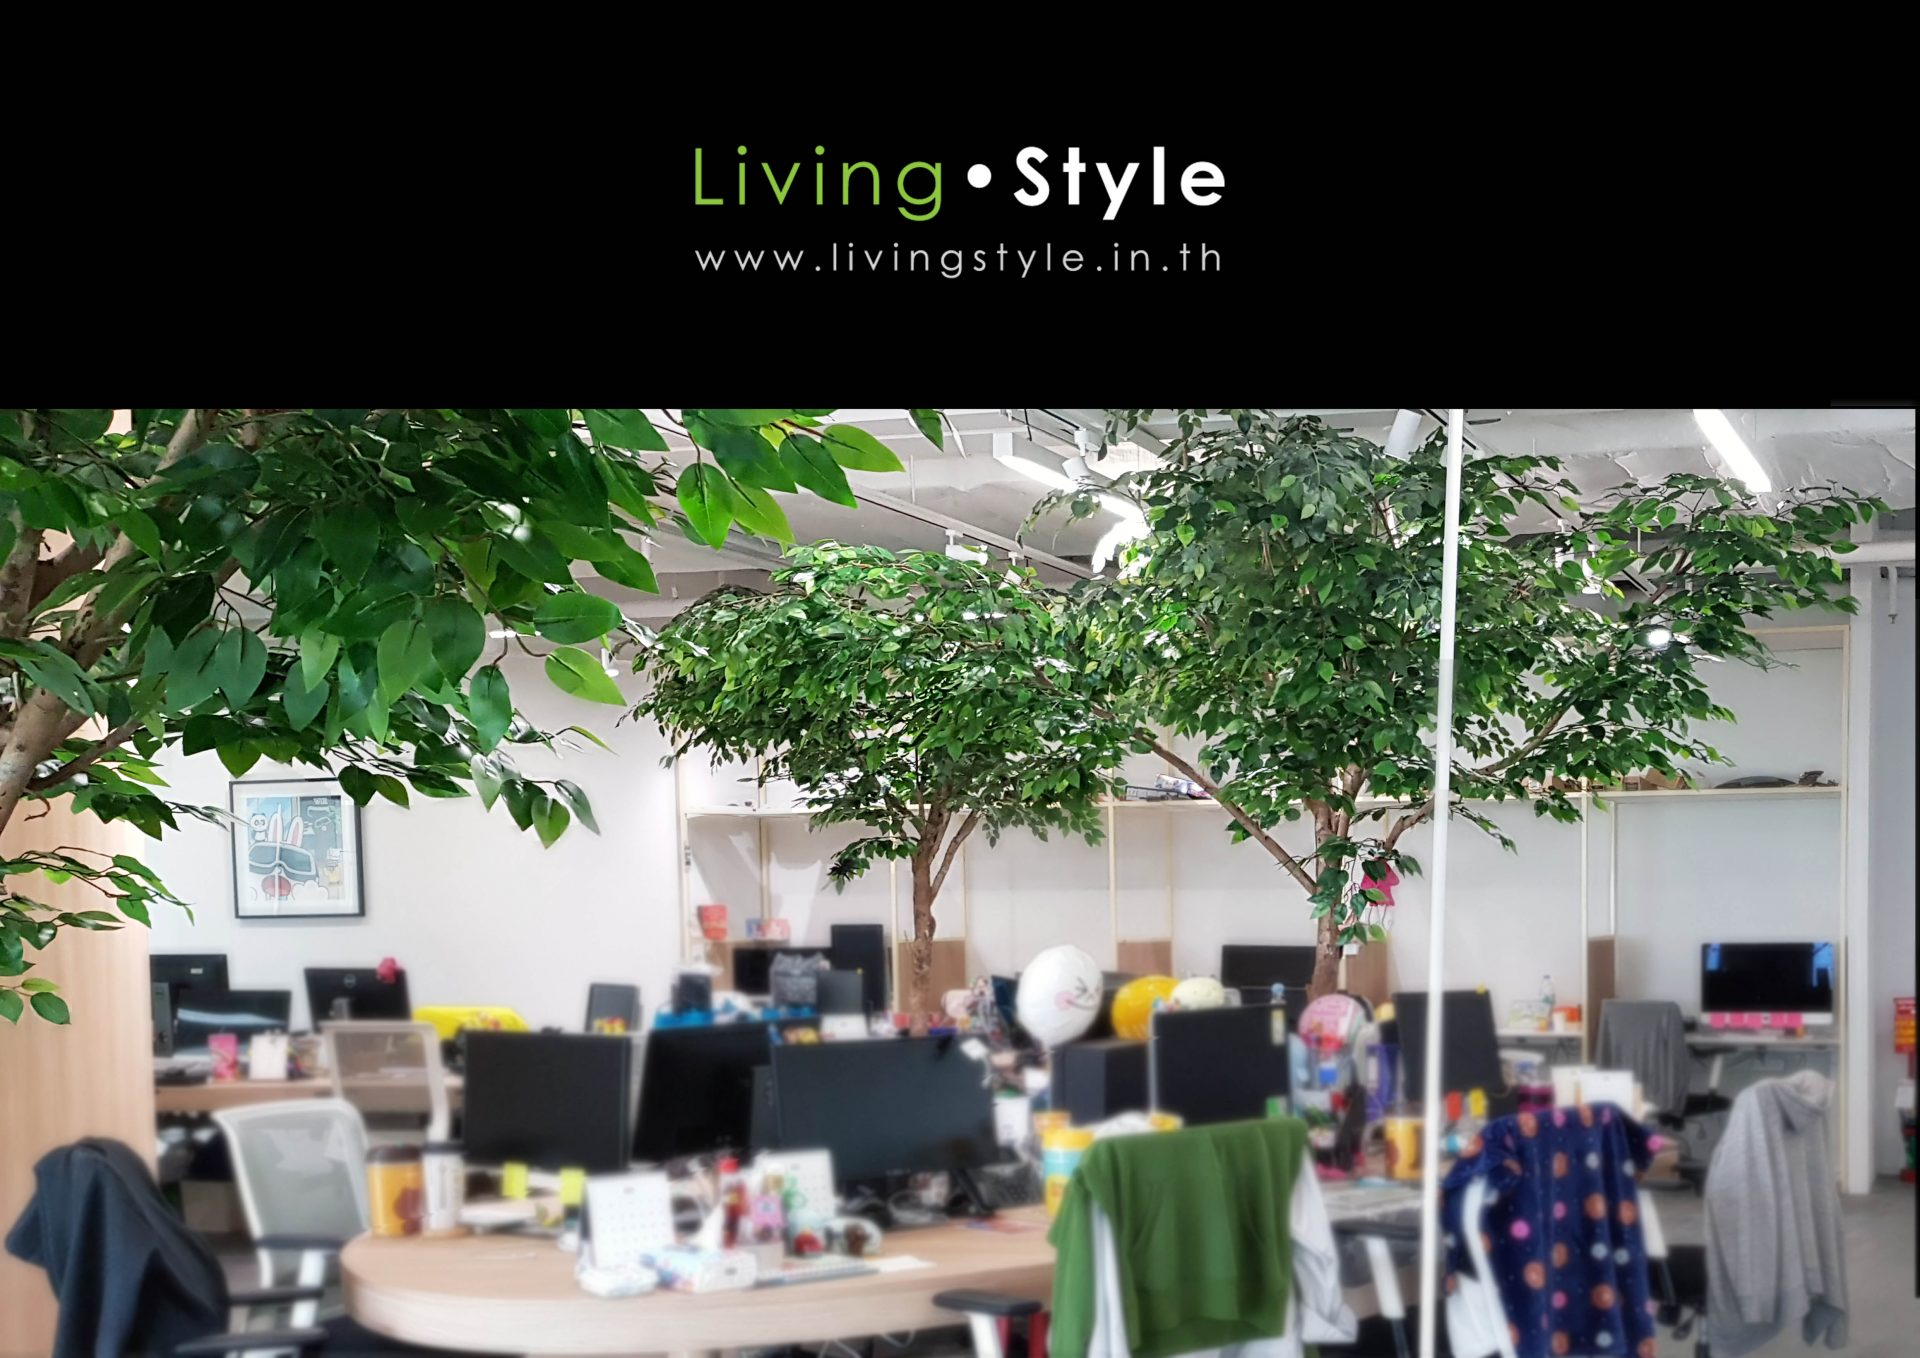 Livingstyle 007 catalog